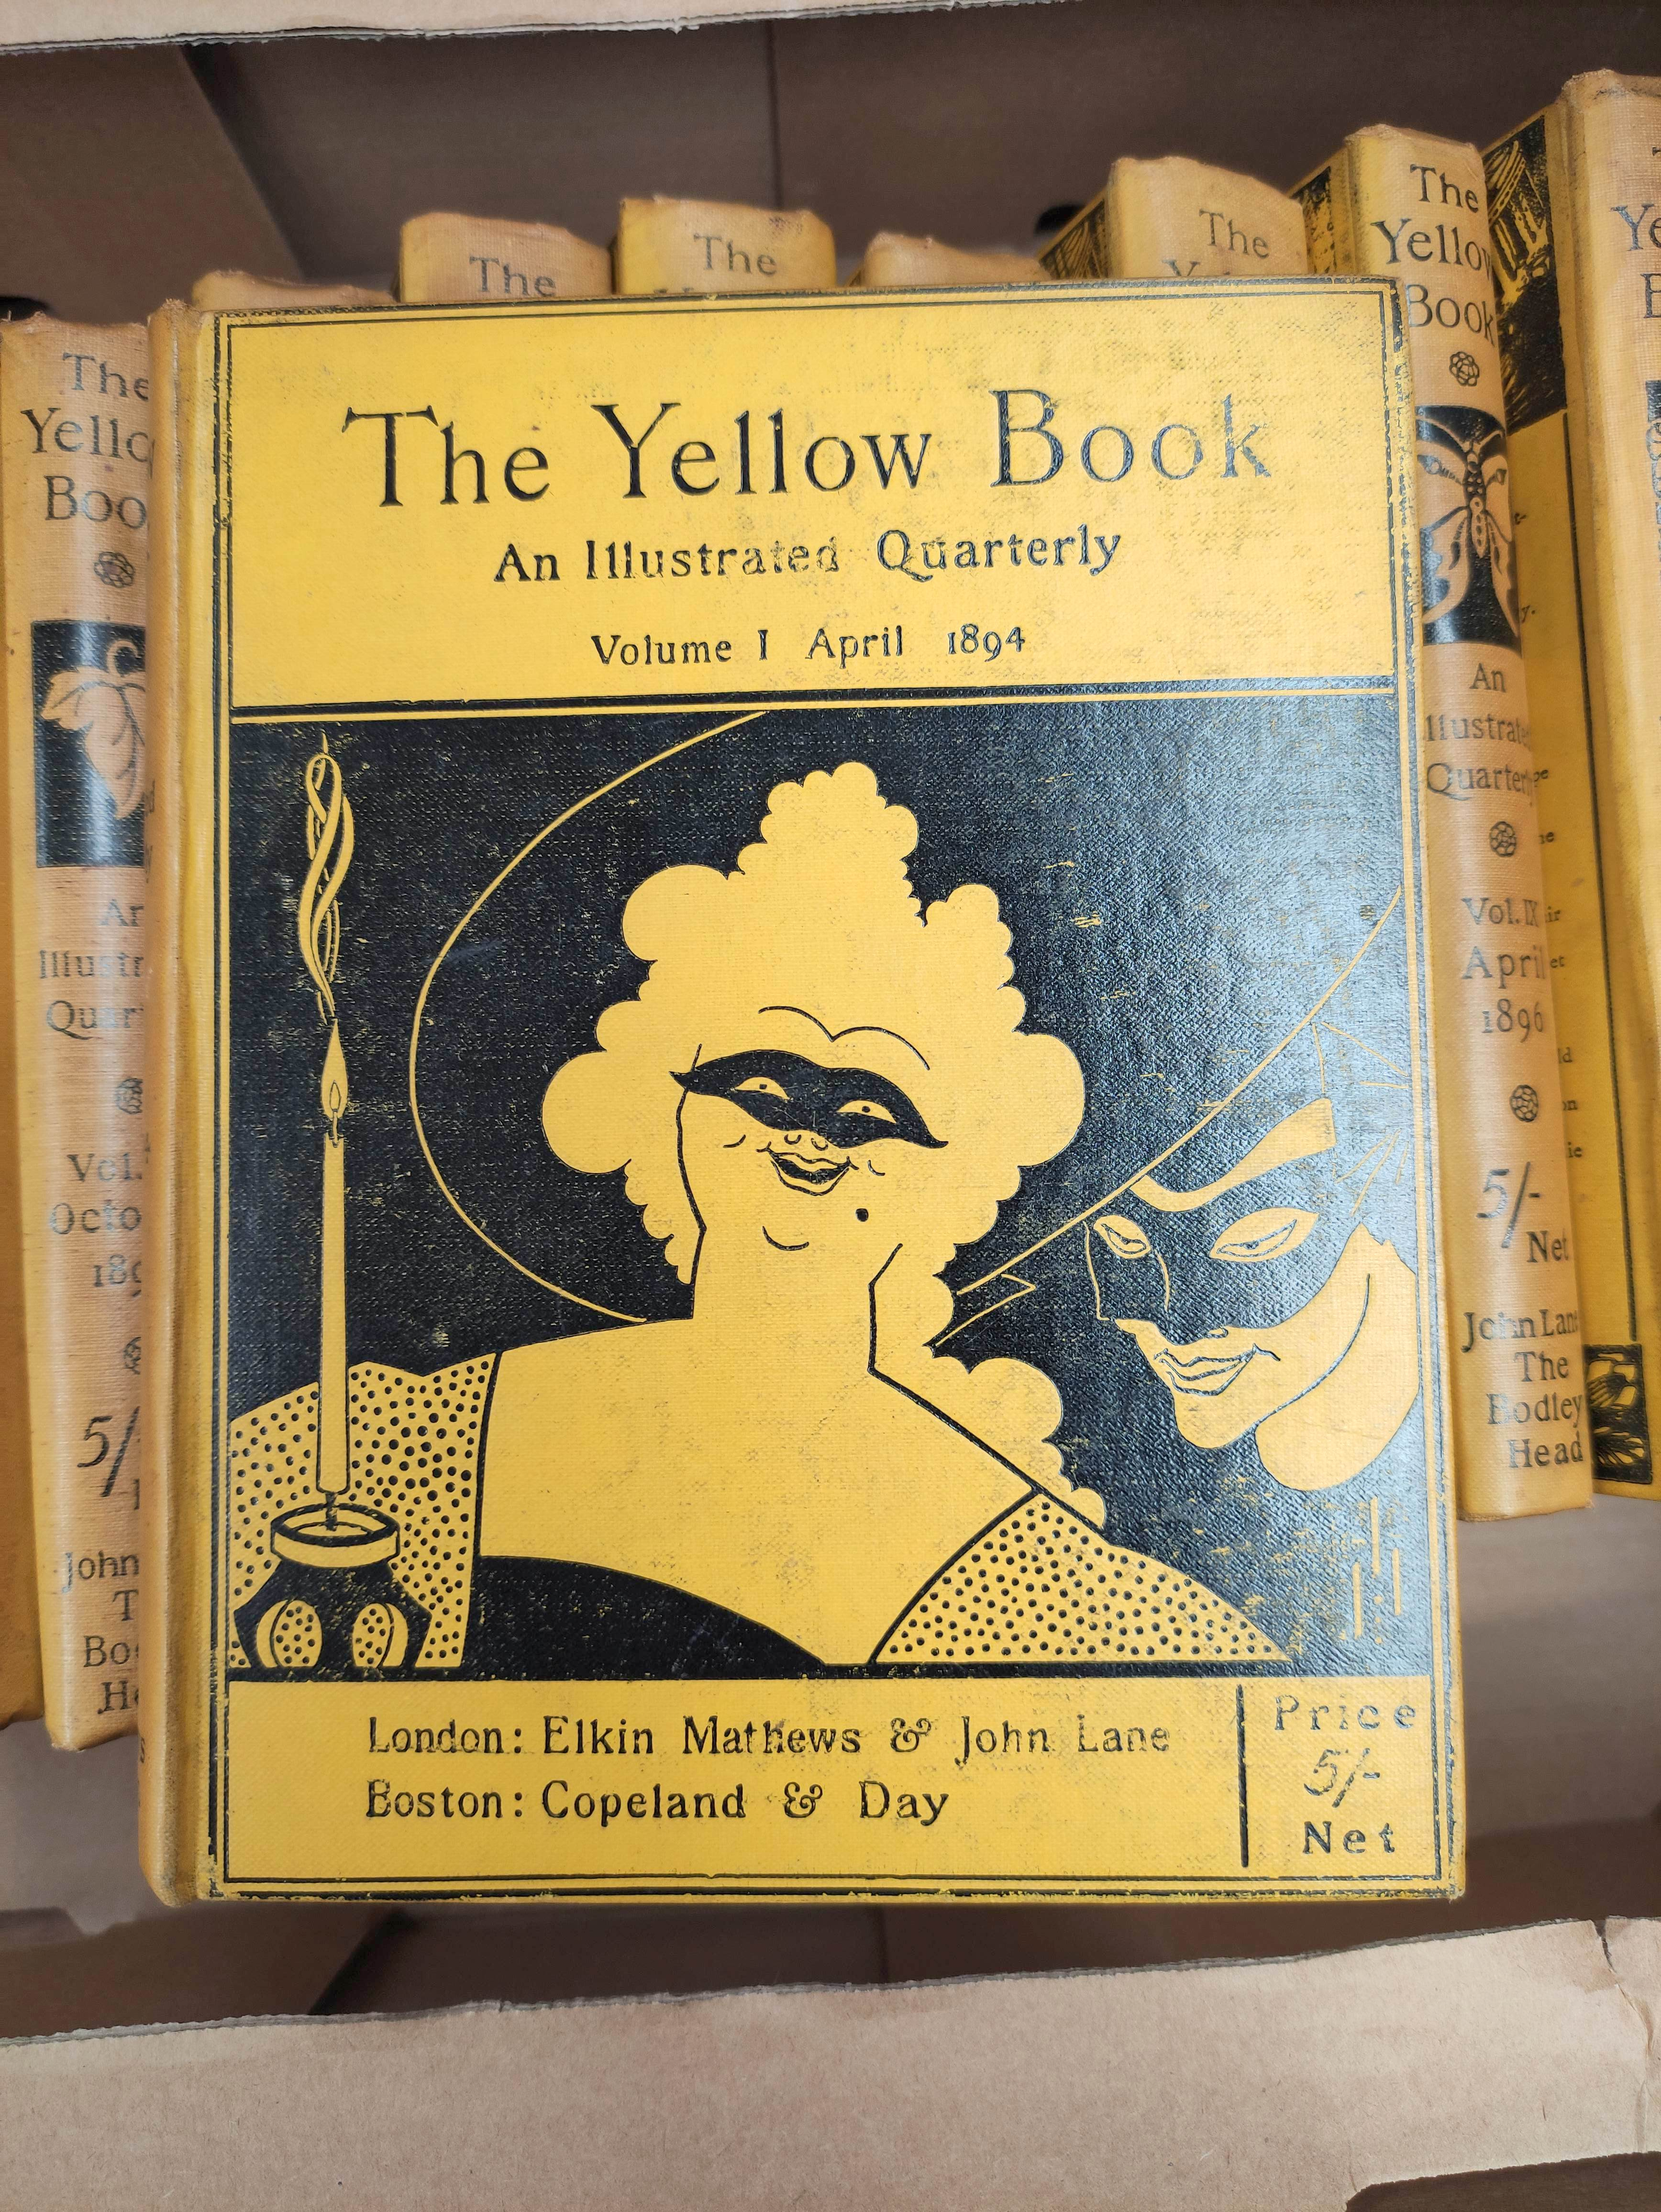 THE YELLOW BOOK.An Illustrated Quarterly. A set of 13 vols., many fine illus. Small quarto. - Image 3 of 45